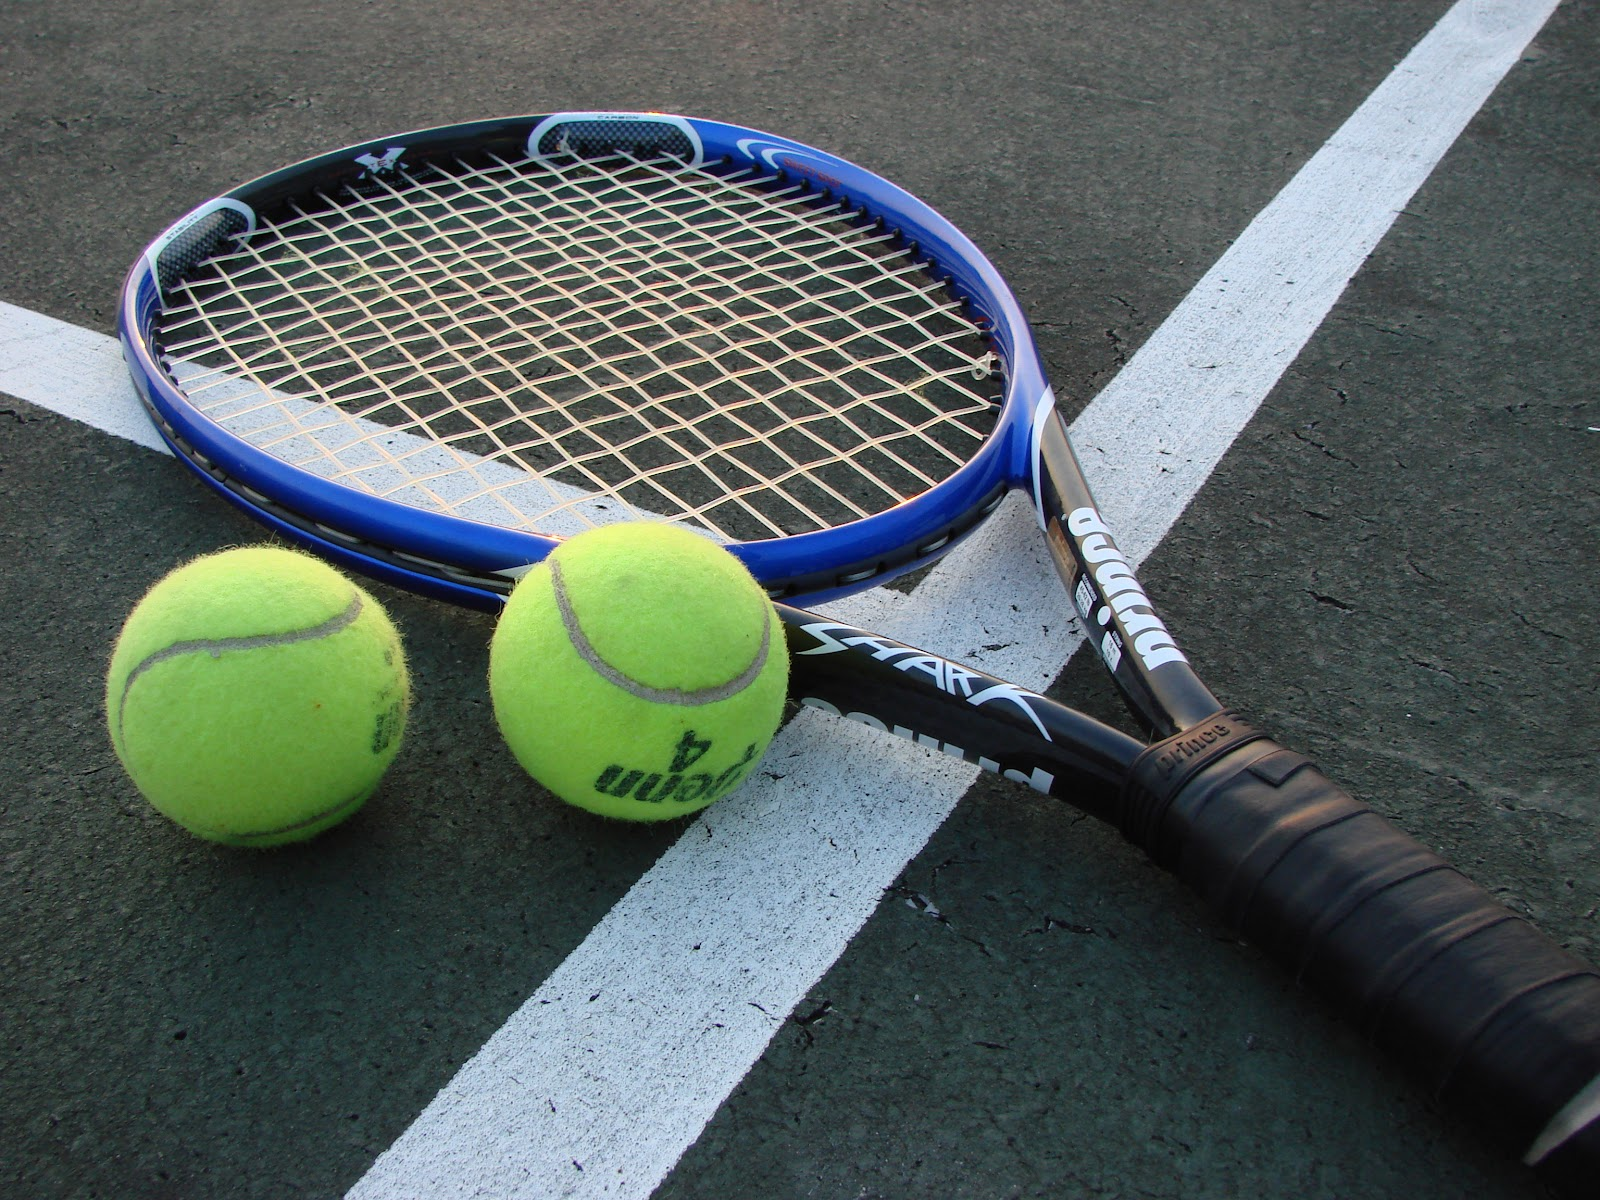 File:Tennis Racket and Balls.